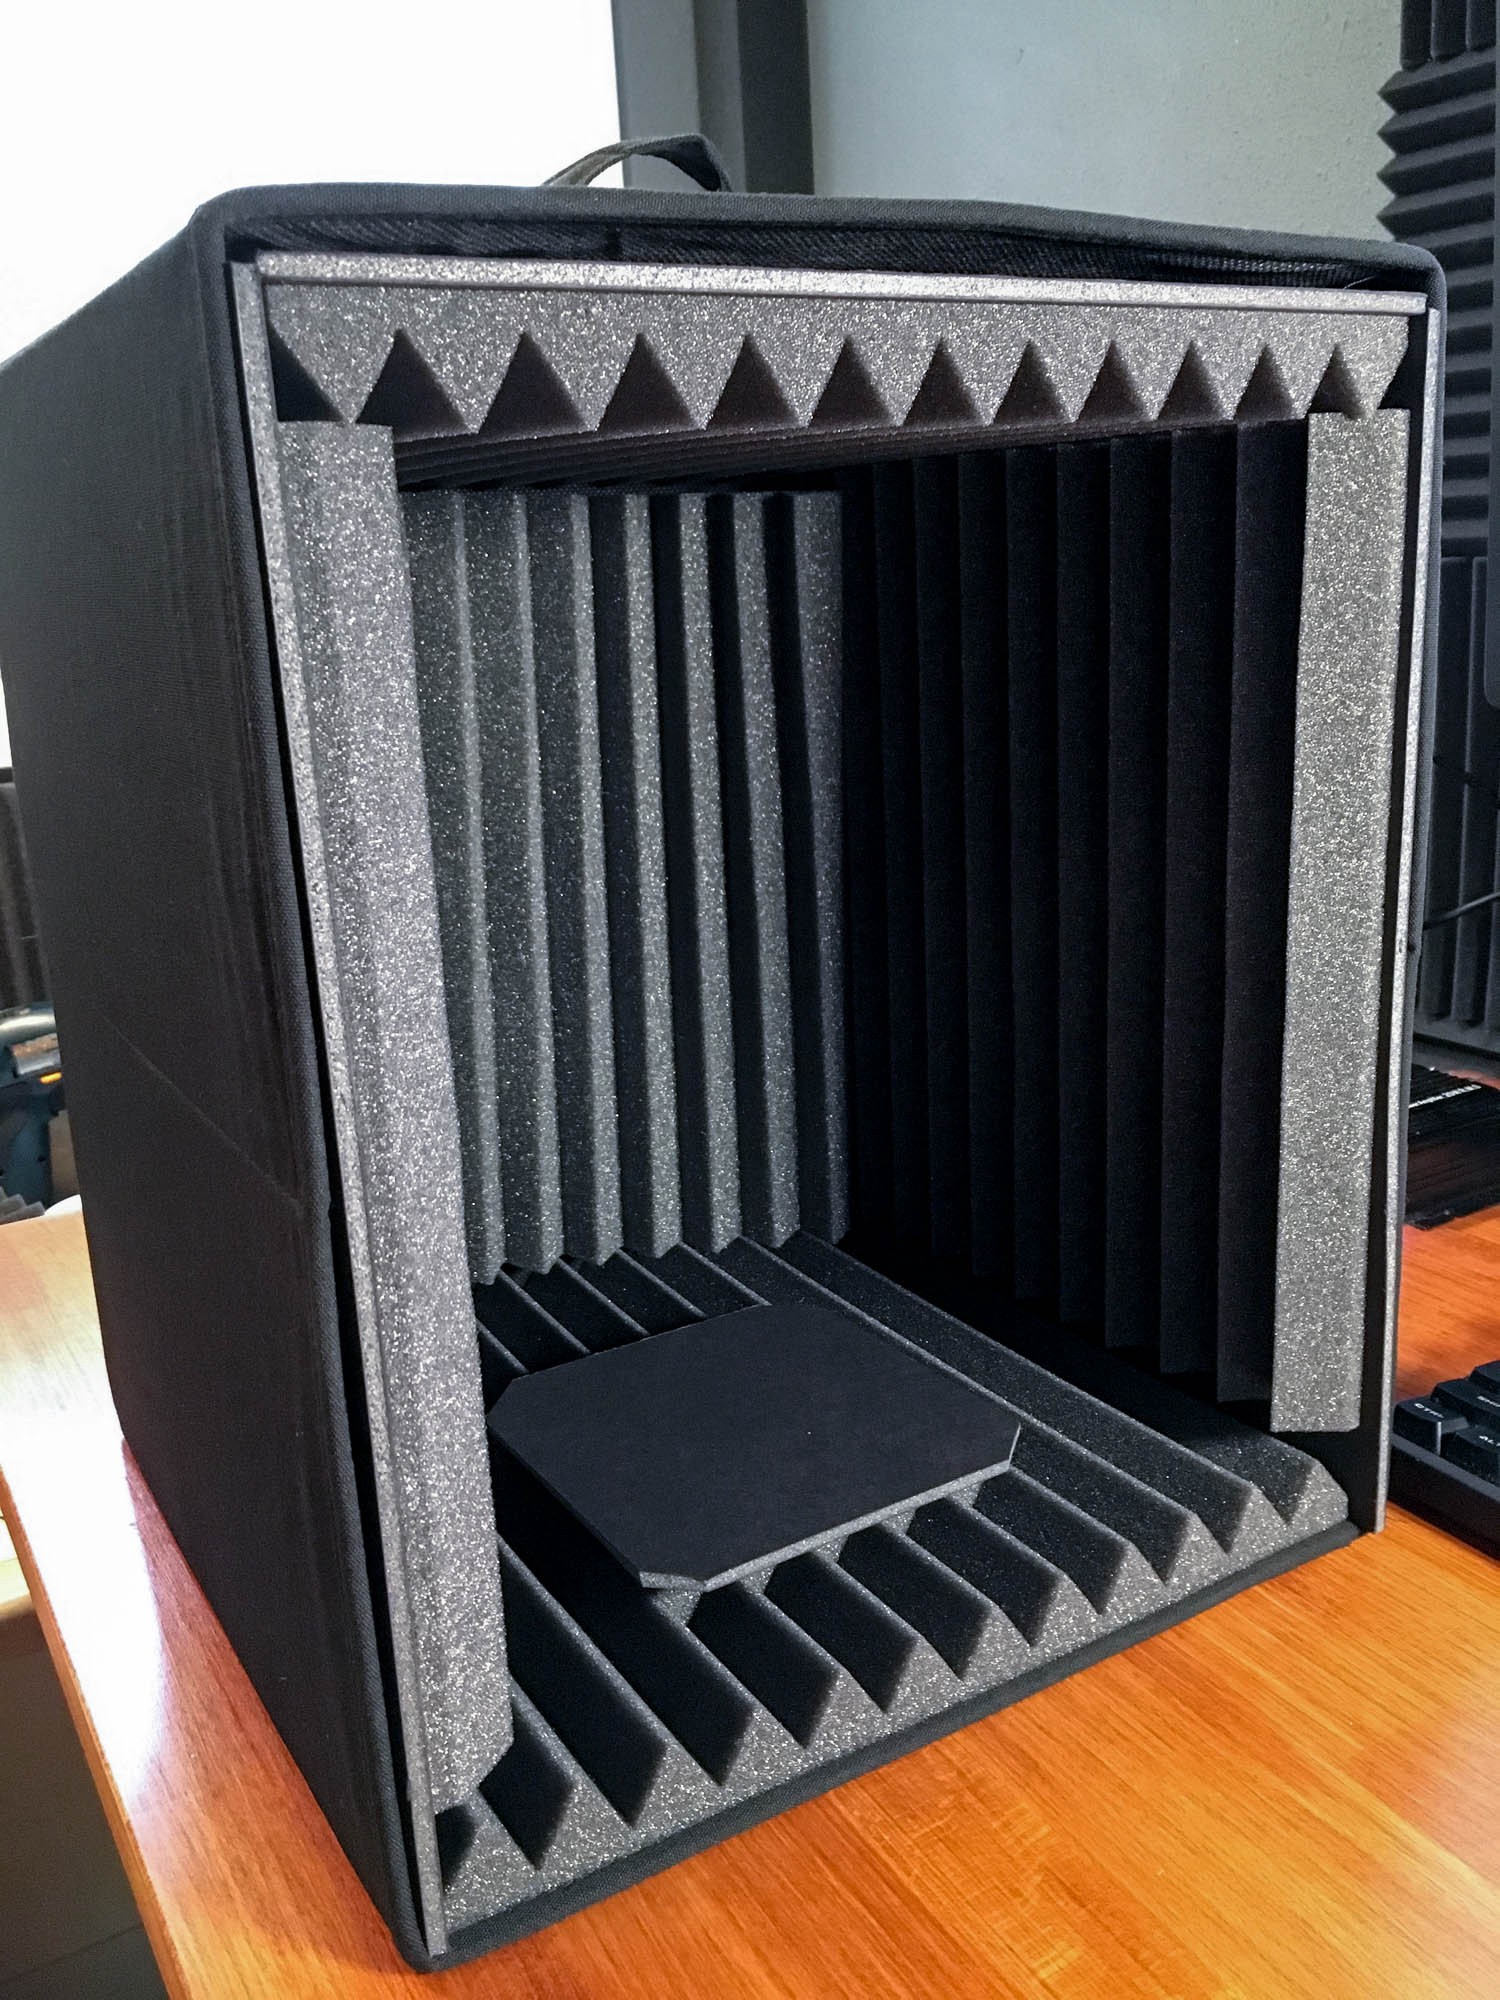 Diy 20 Microphone Isolation Box For Podcasting